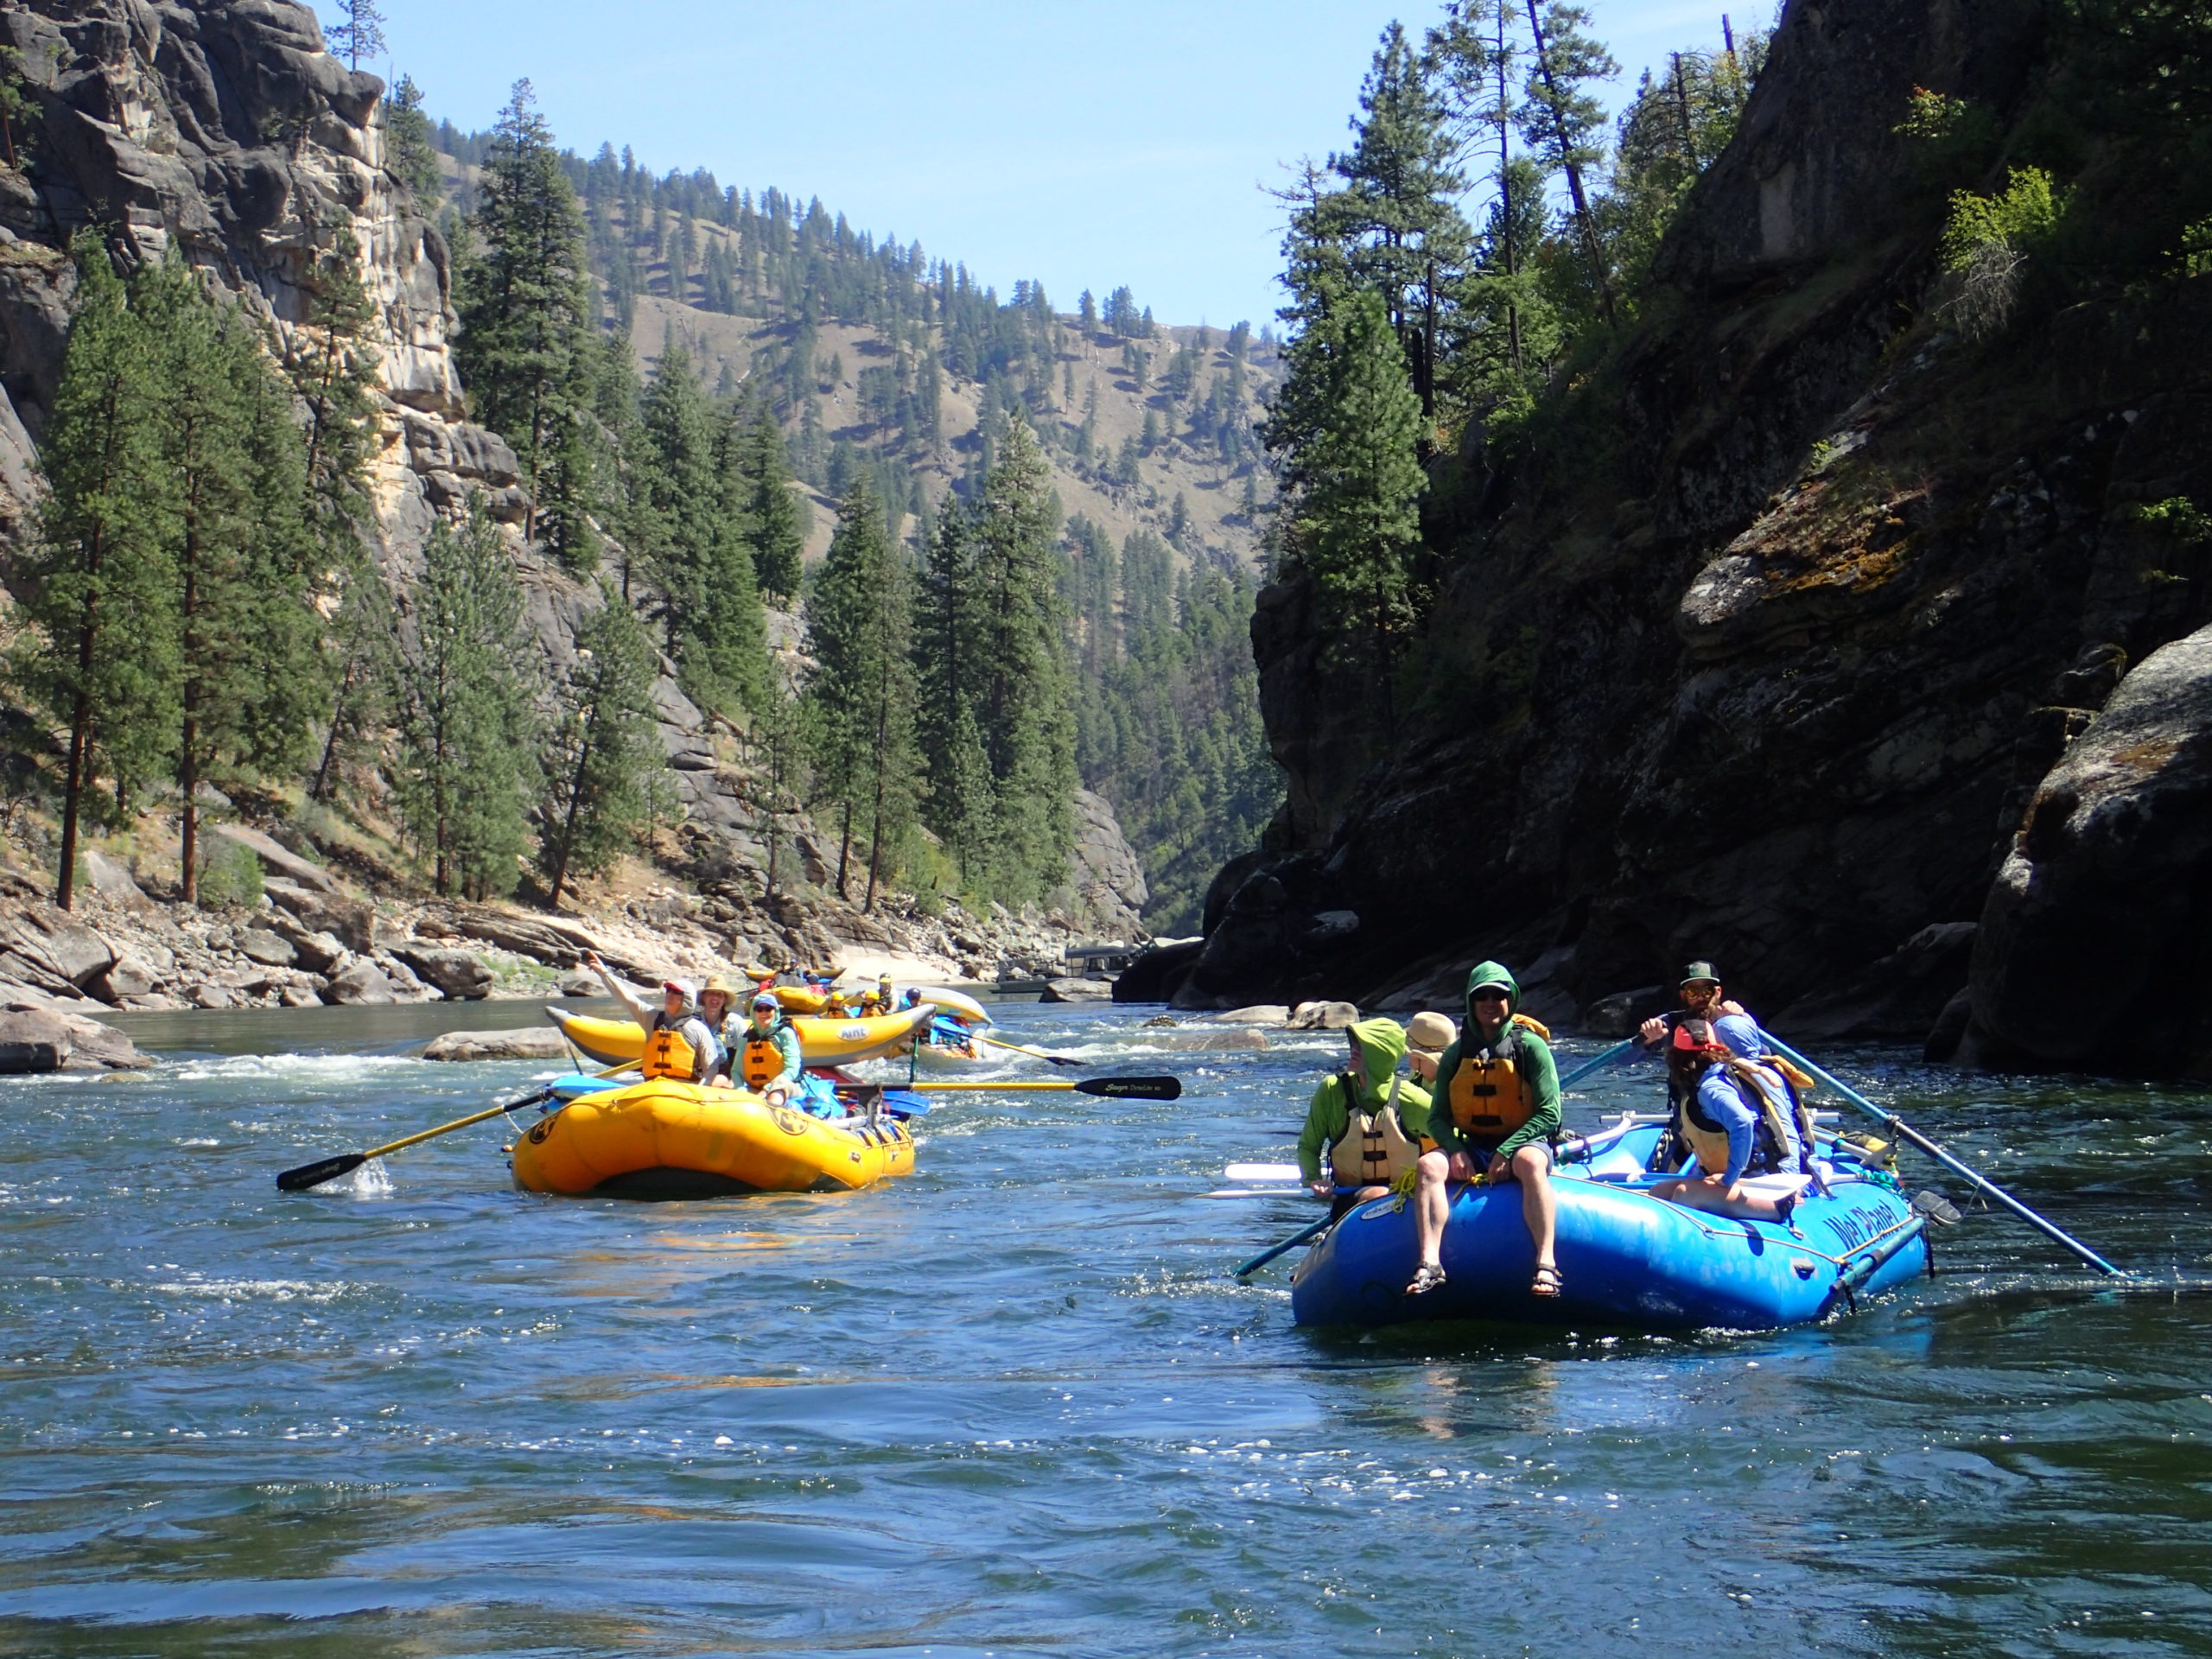 Two rubber rafts on the Main Salmon River in Idaho